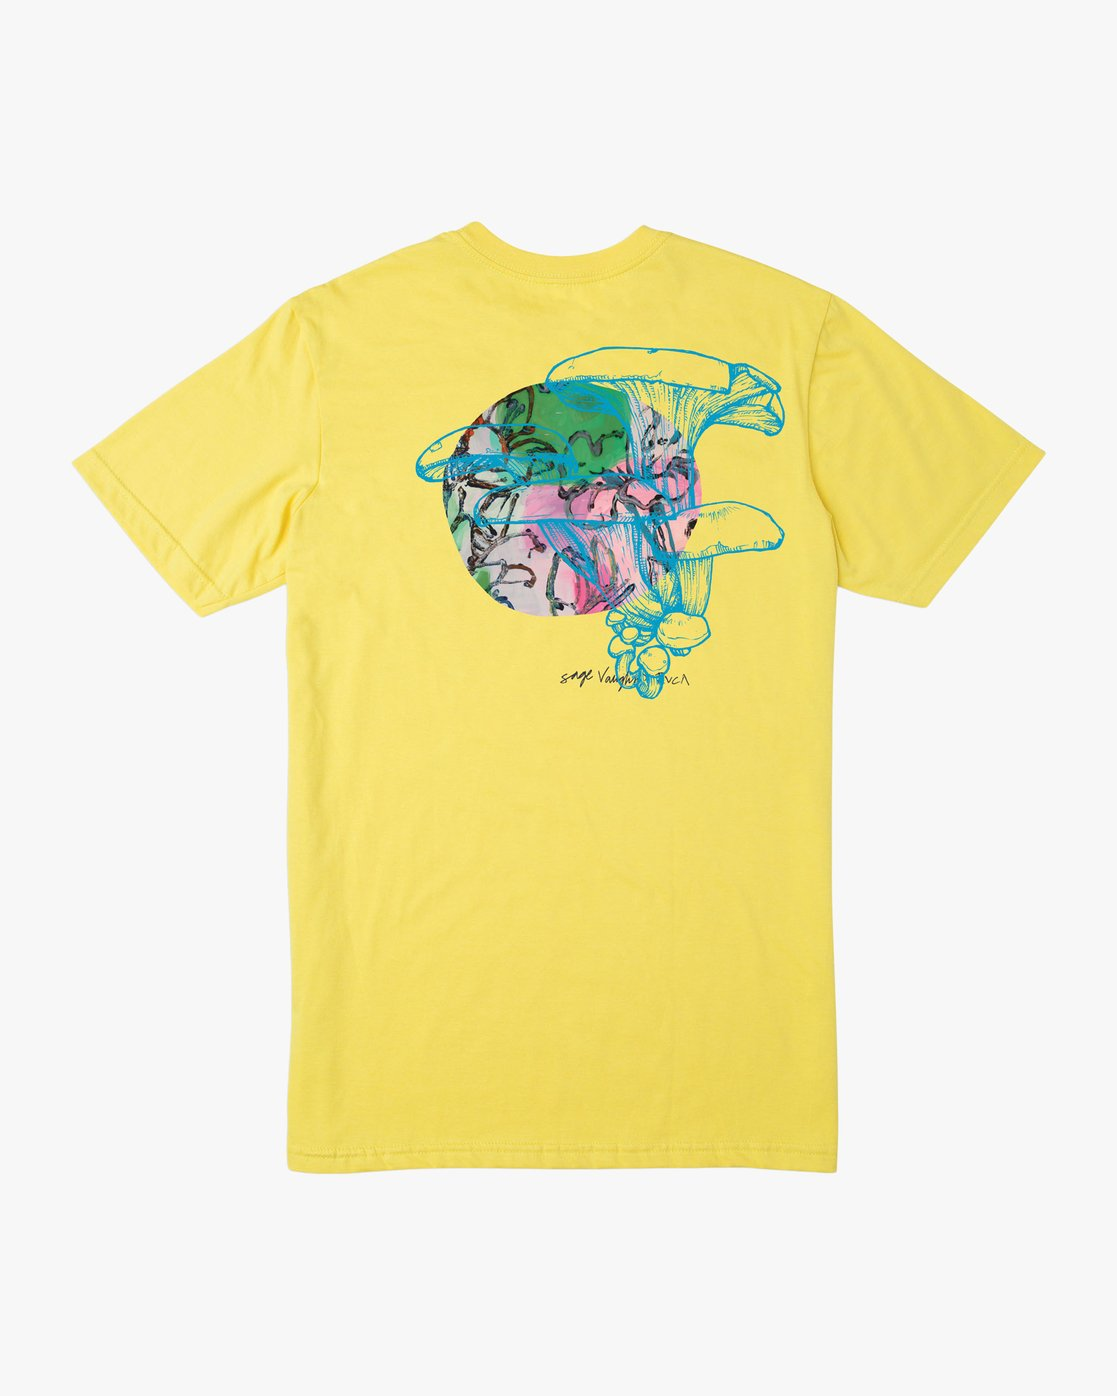 0 Sage Vaughn Shroom Collage T-Shirt Yellow M401TRSH RVCA